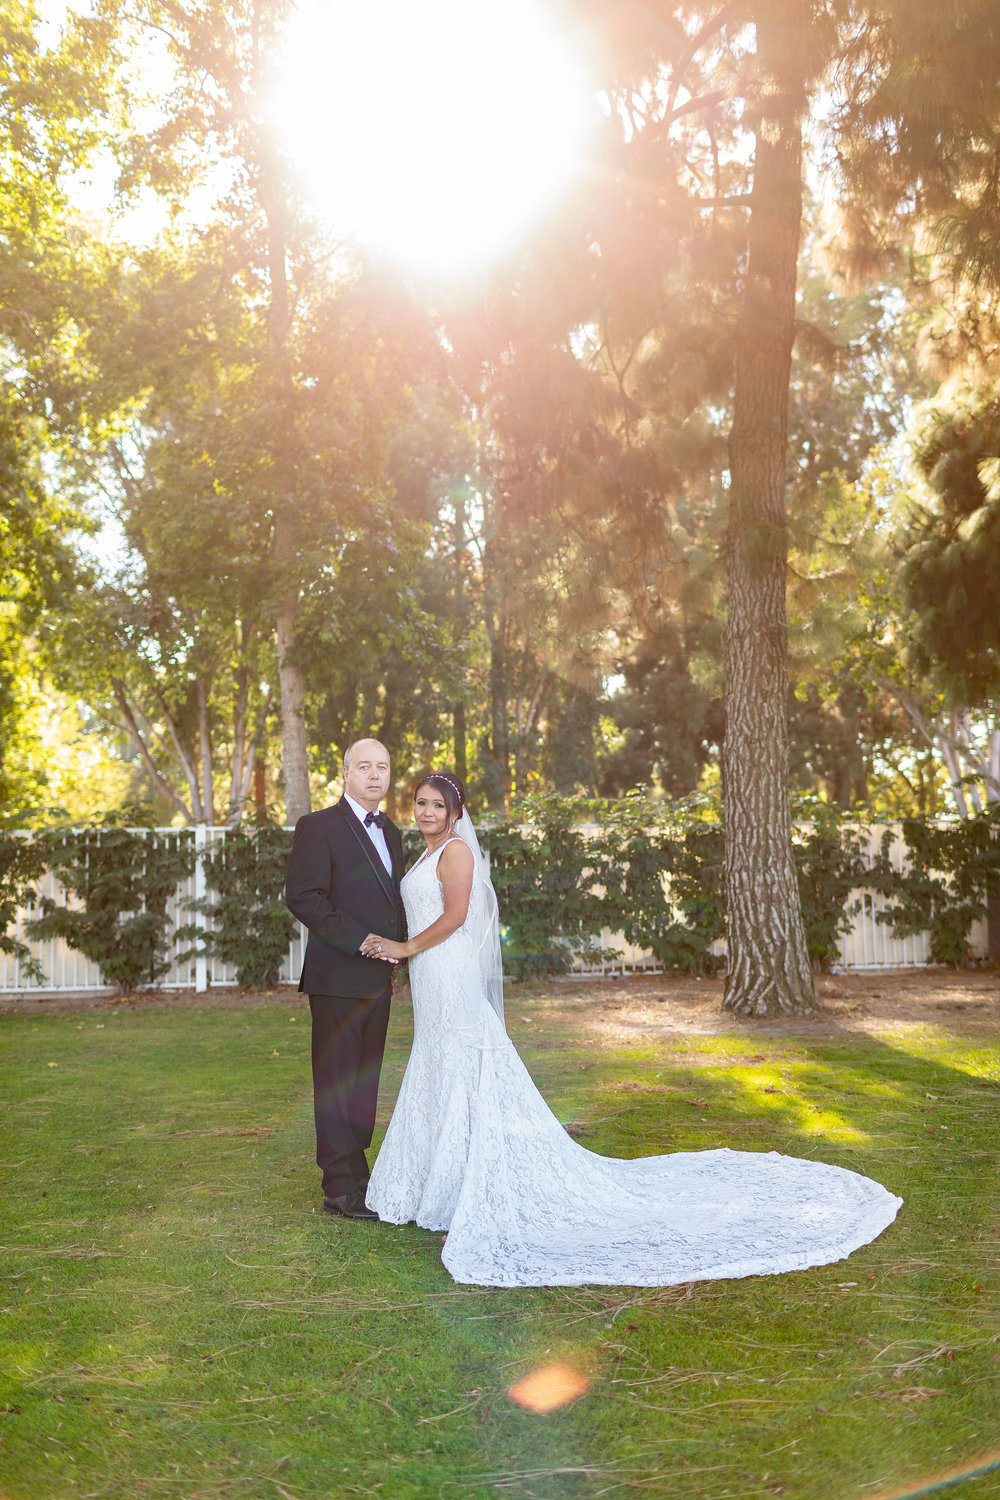 ! Long Beach El Dorado Wedding Portraits by James Korin Photography.jpg